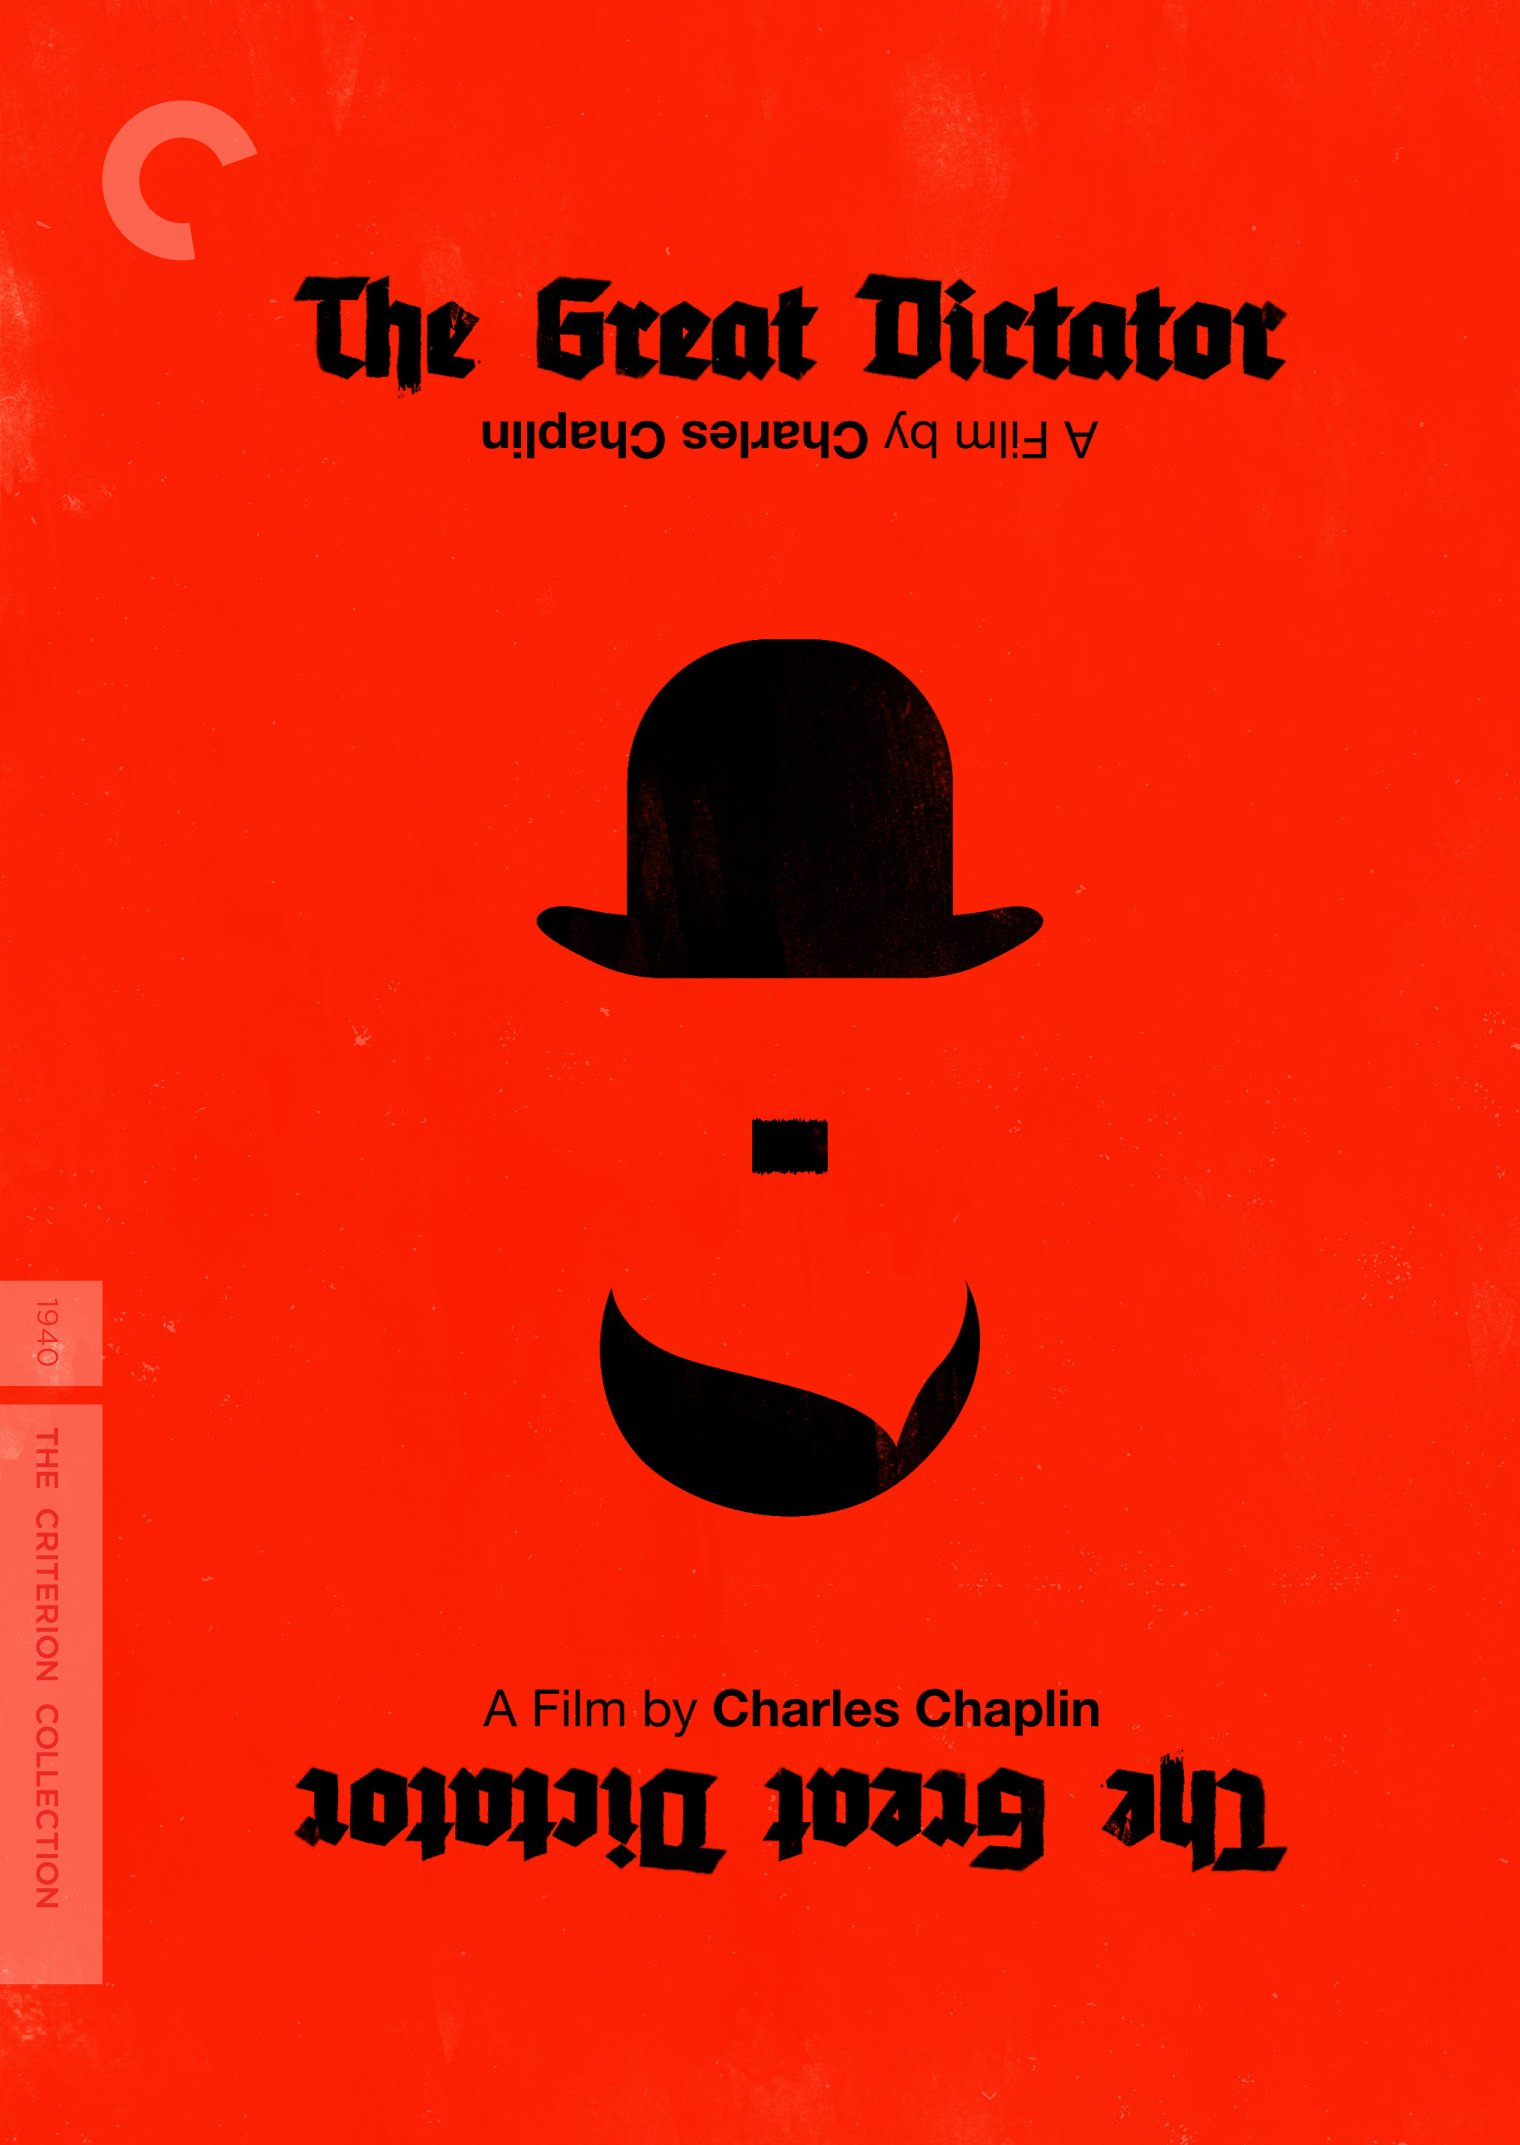 The Great Dictator (The Criterion Collection) by Criterion